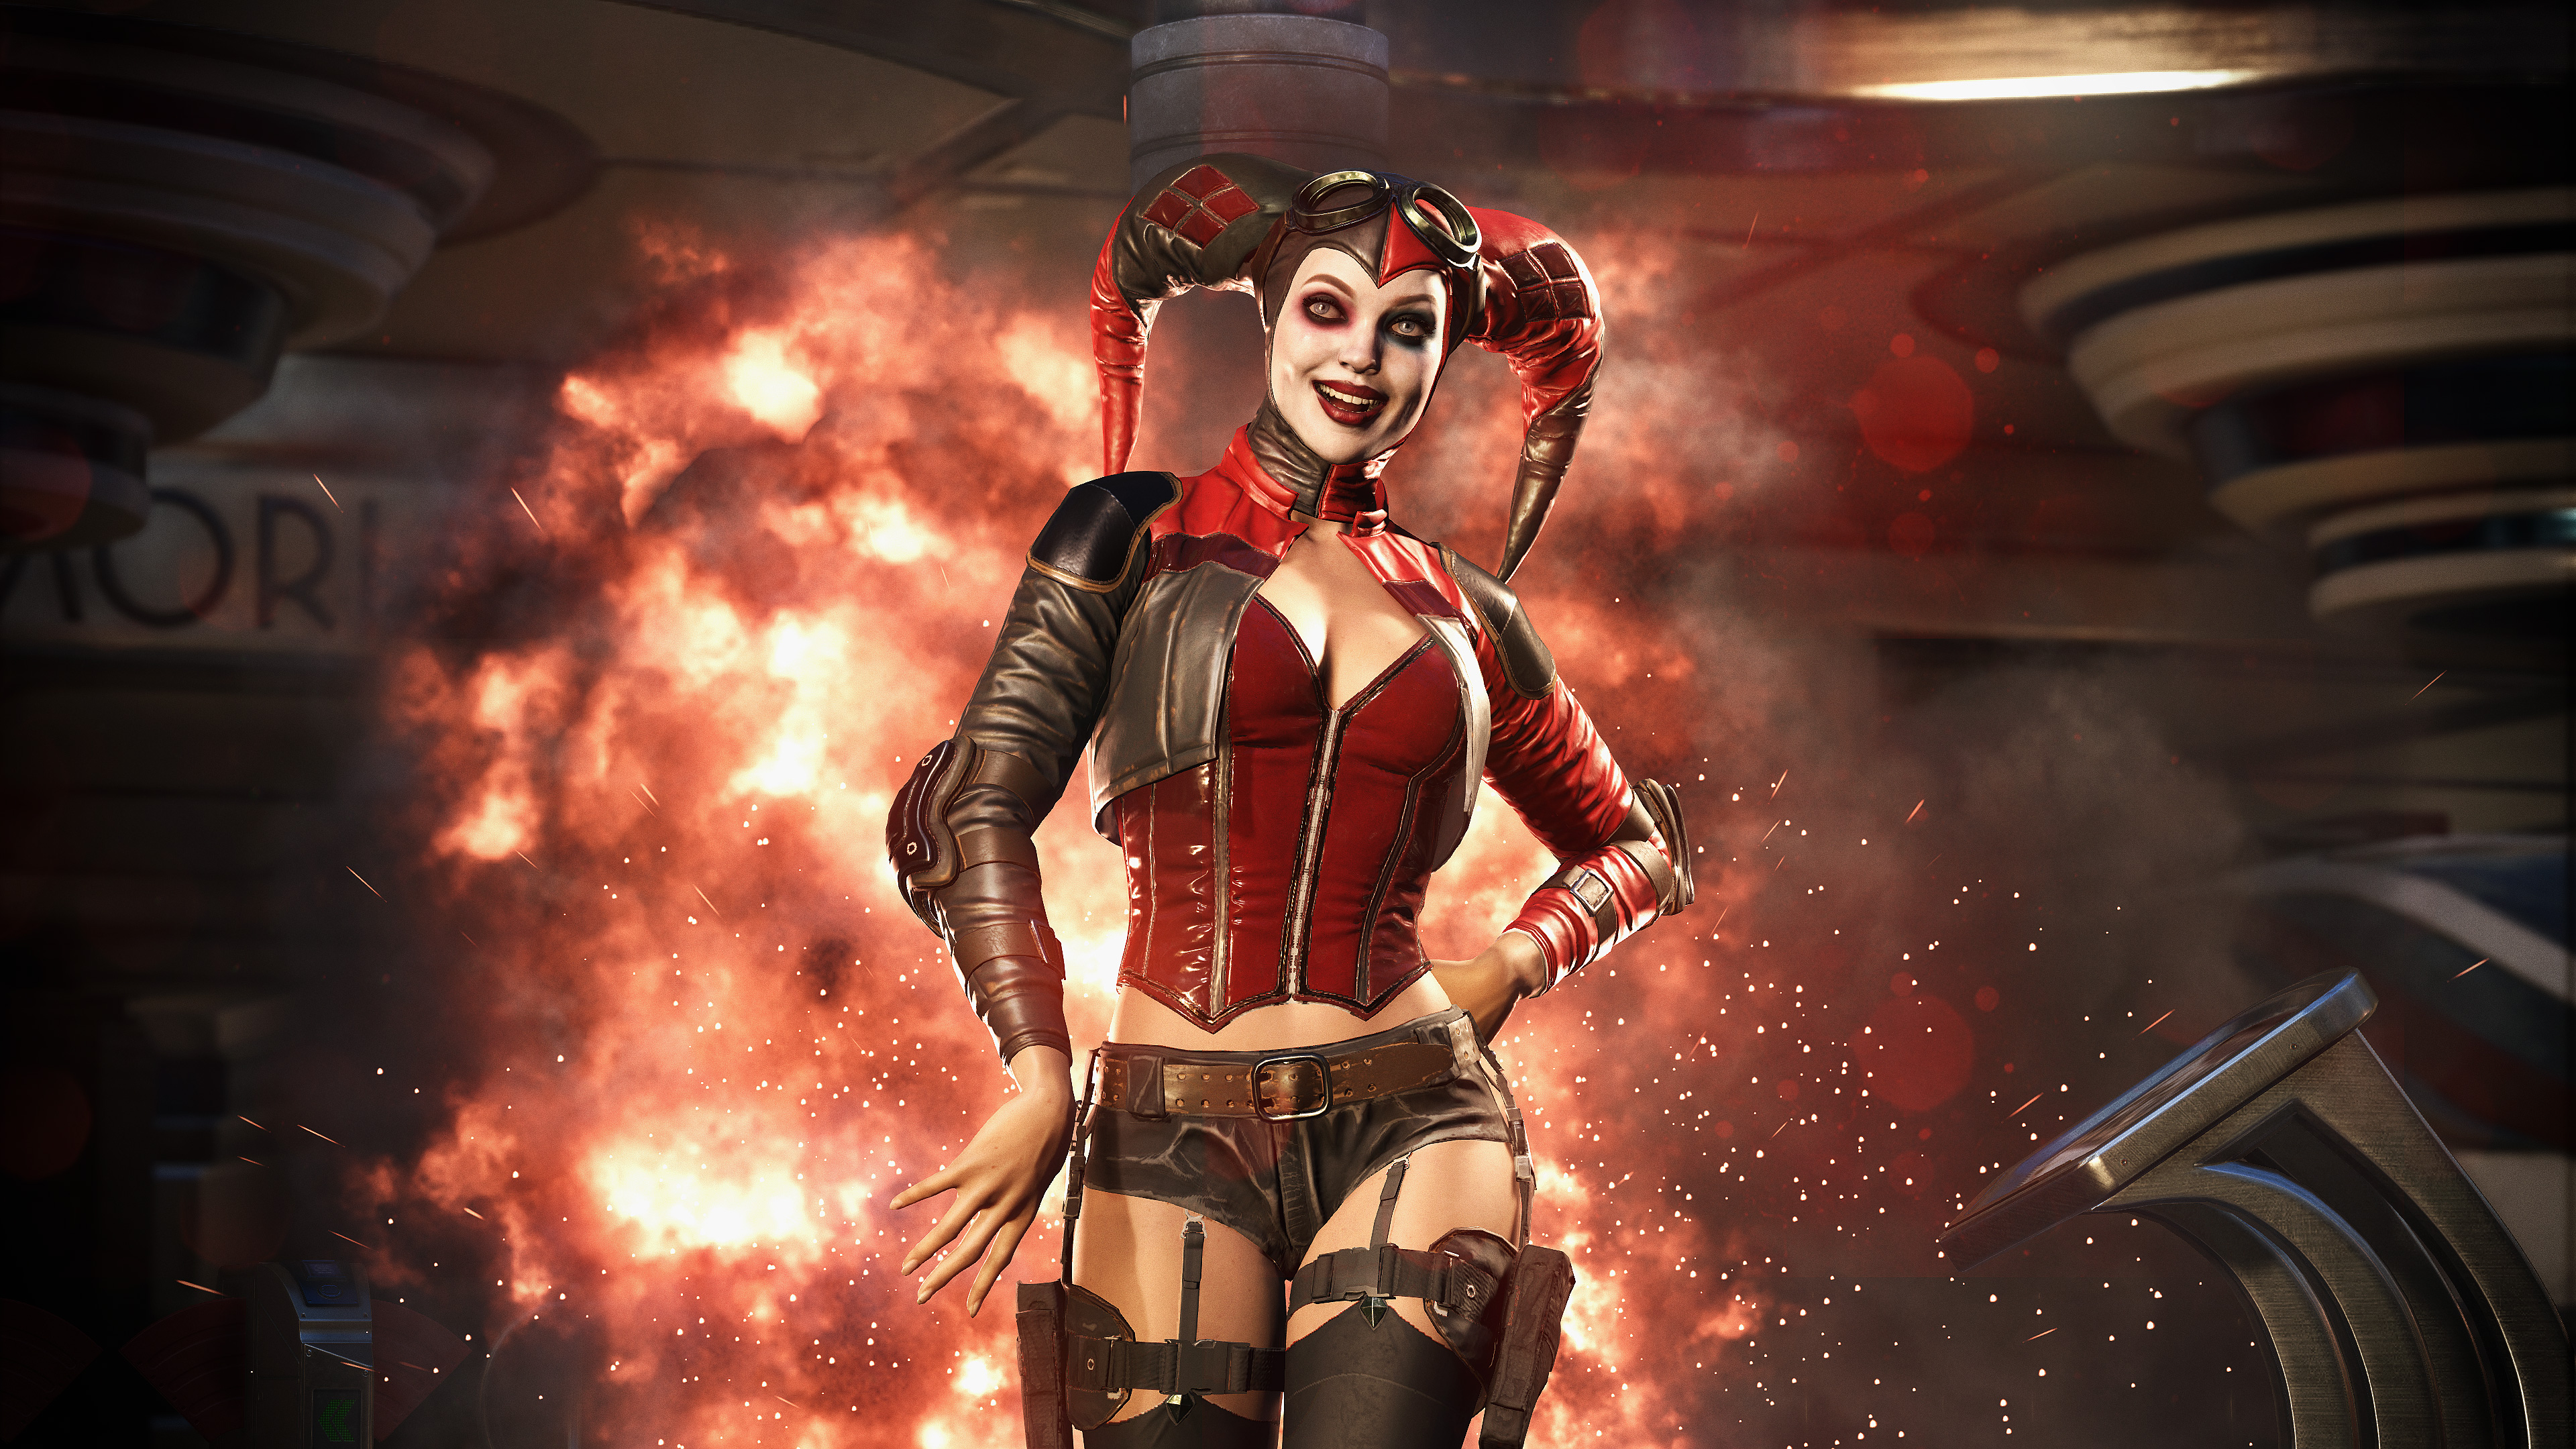 Injustice 2 Harley Quinn Screenshot BagoGames